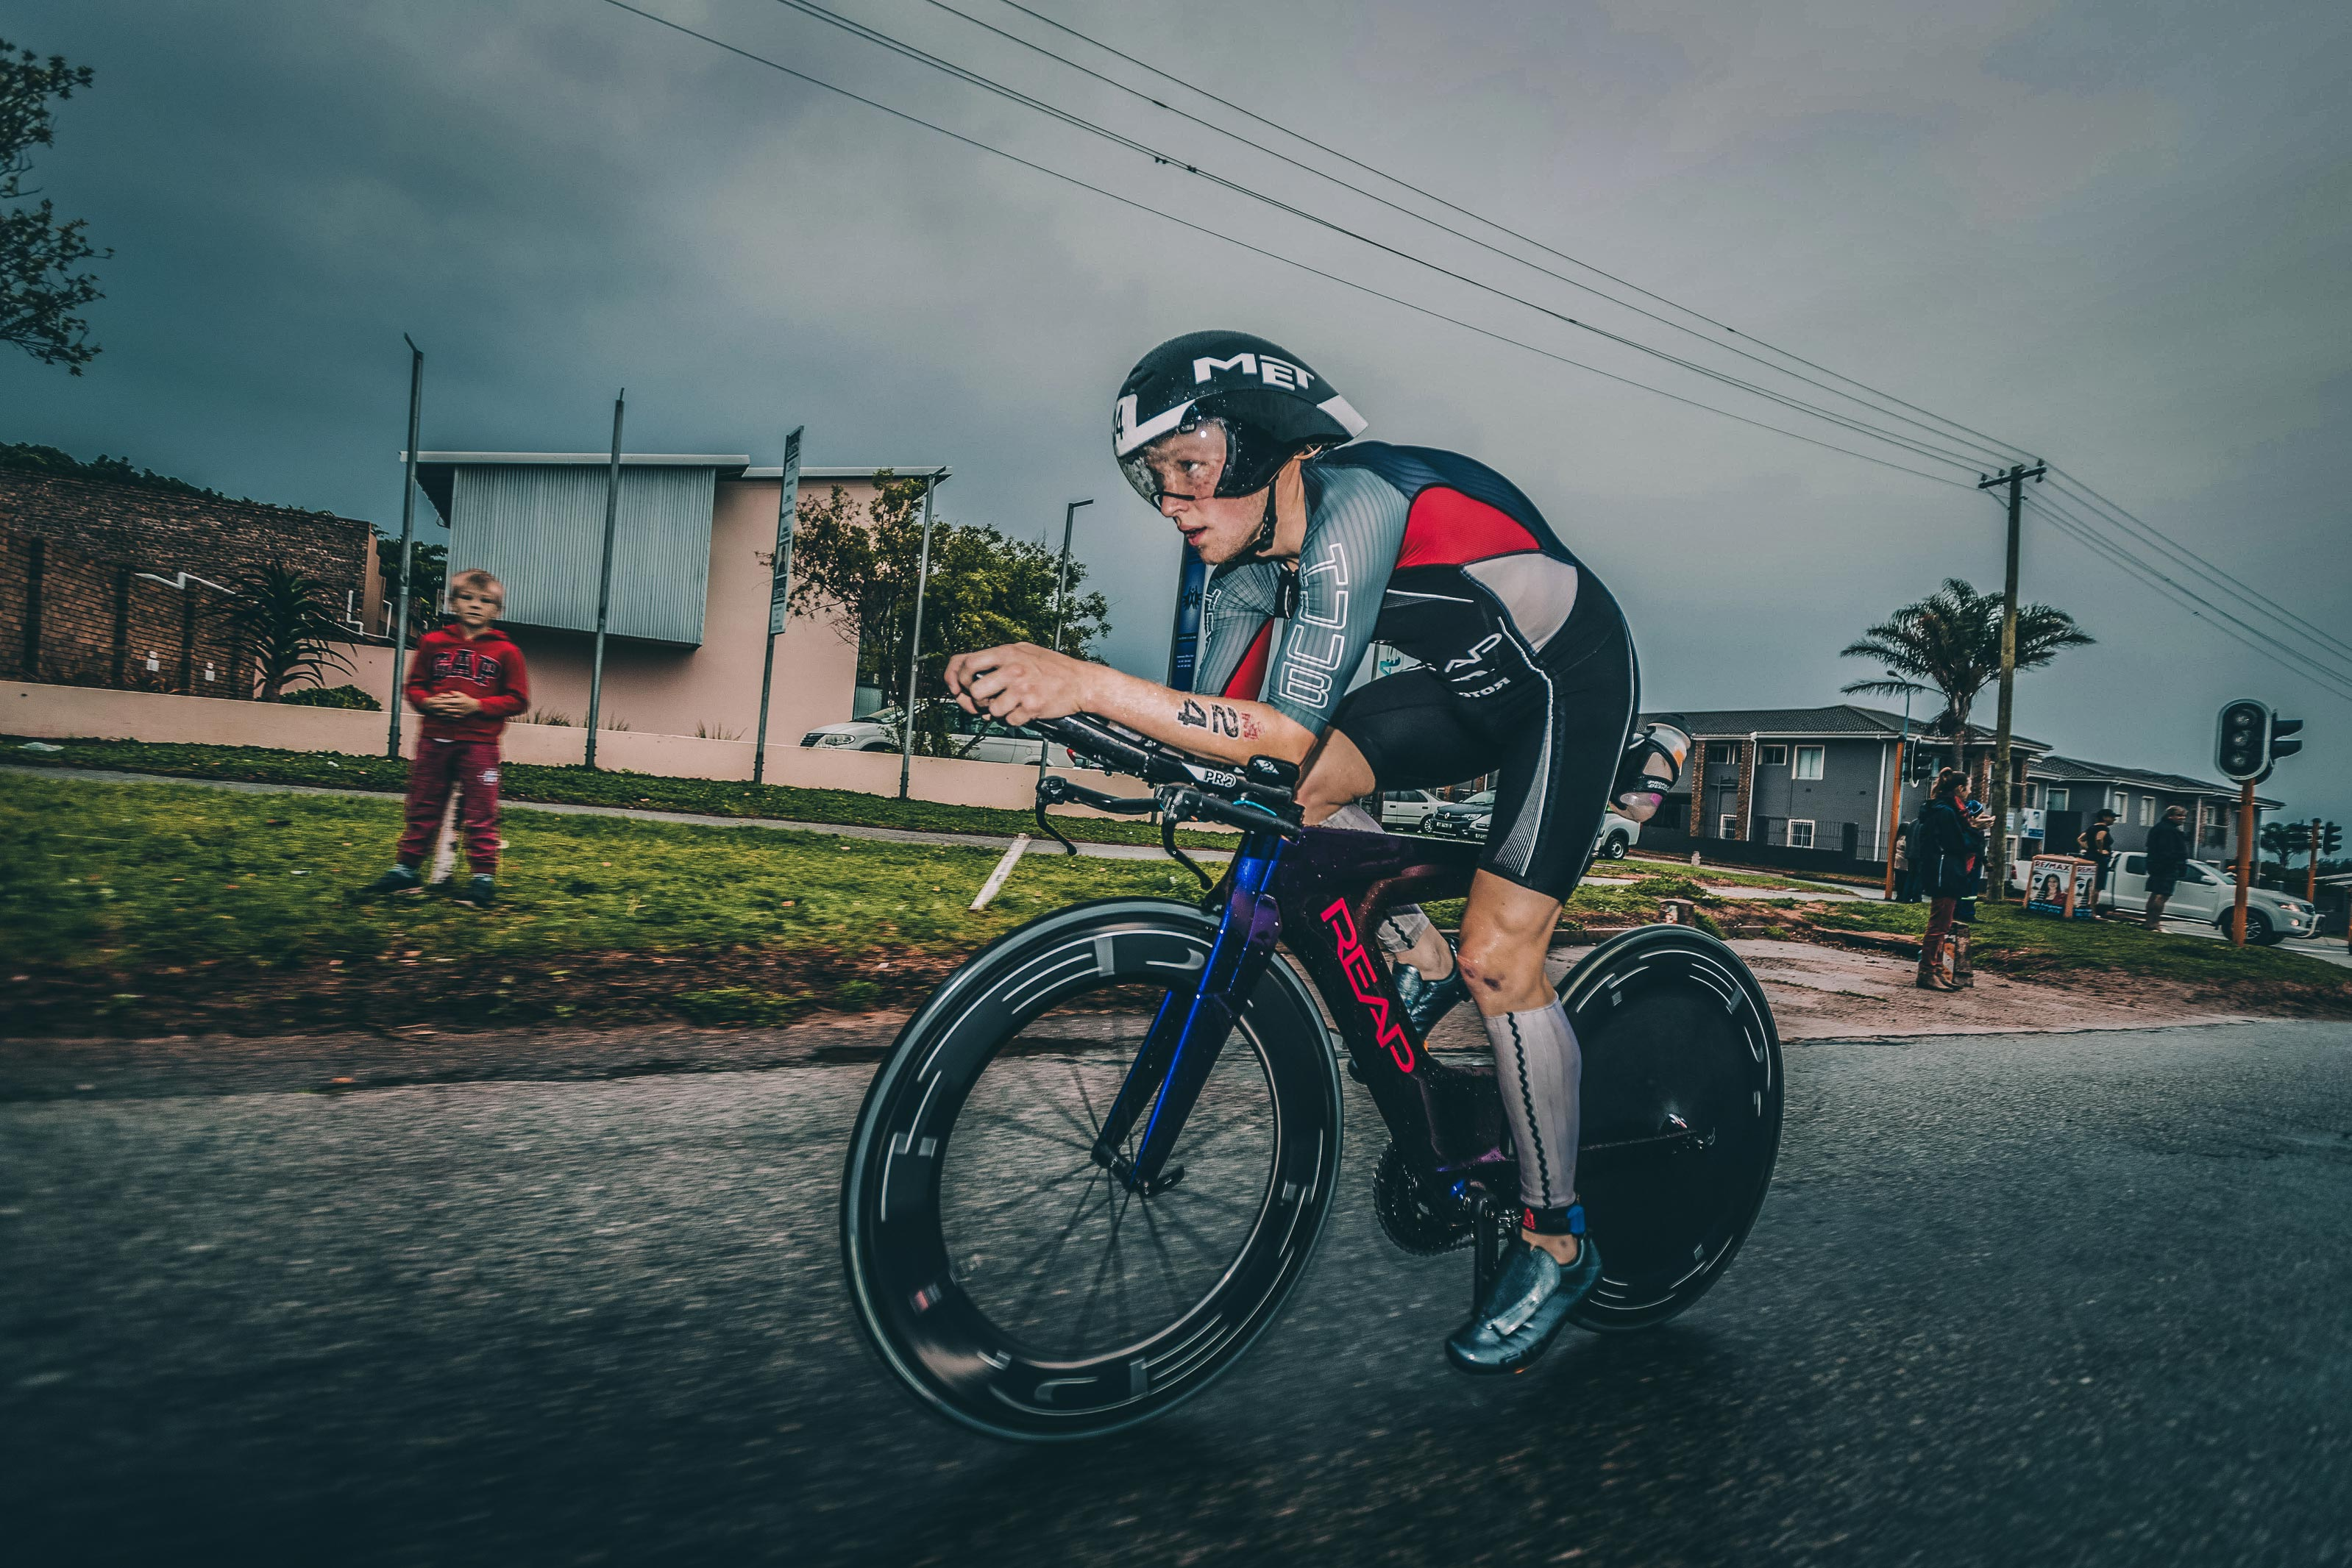 Reap-Bikes-Elliot-Smales-70.3-World-Champs-South-Africa-2